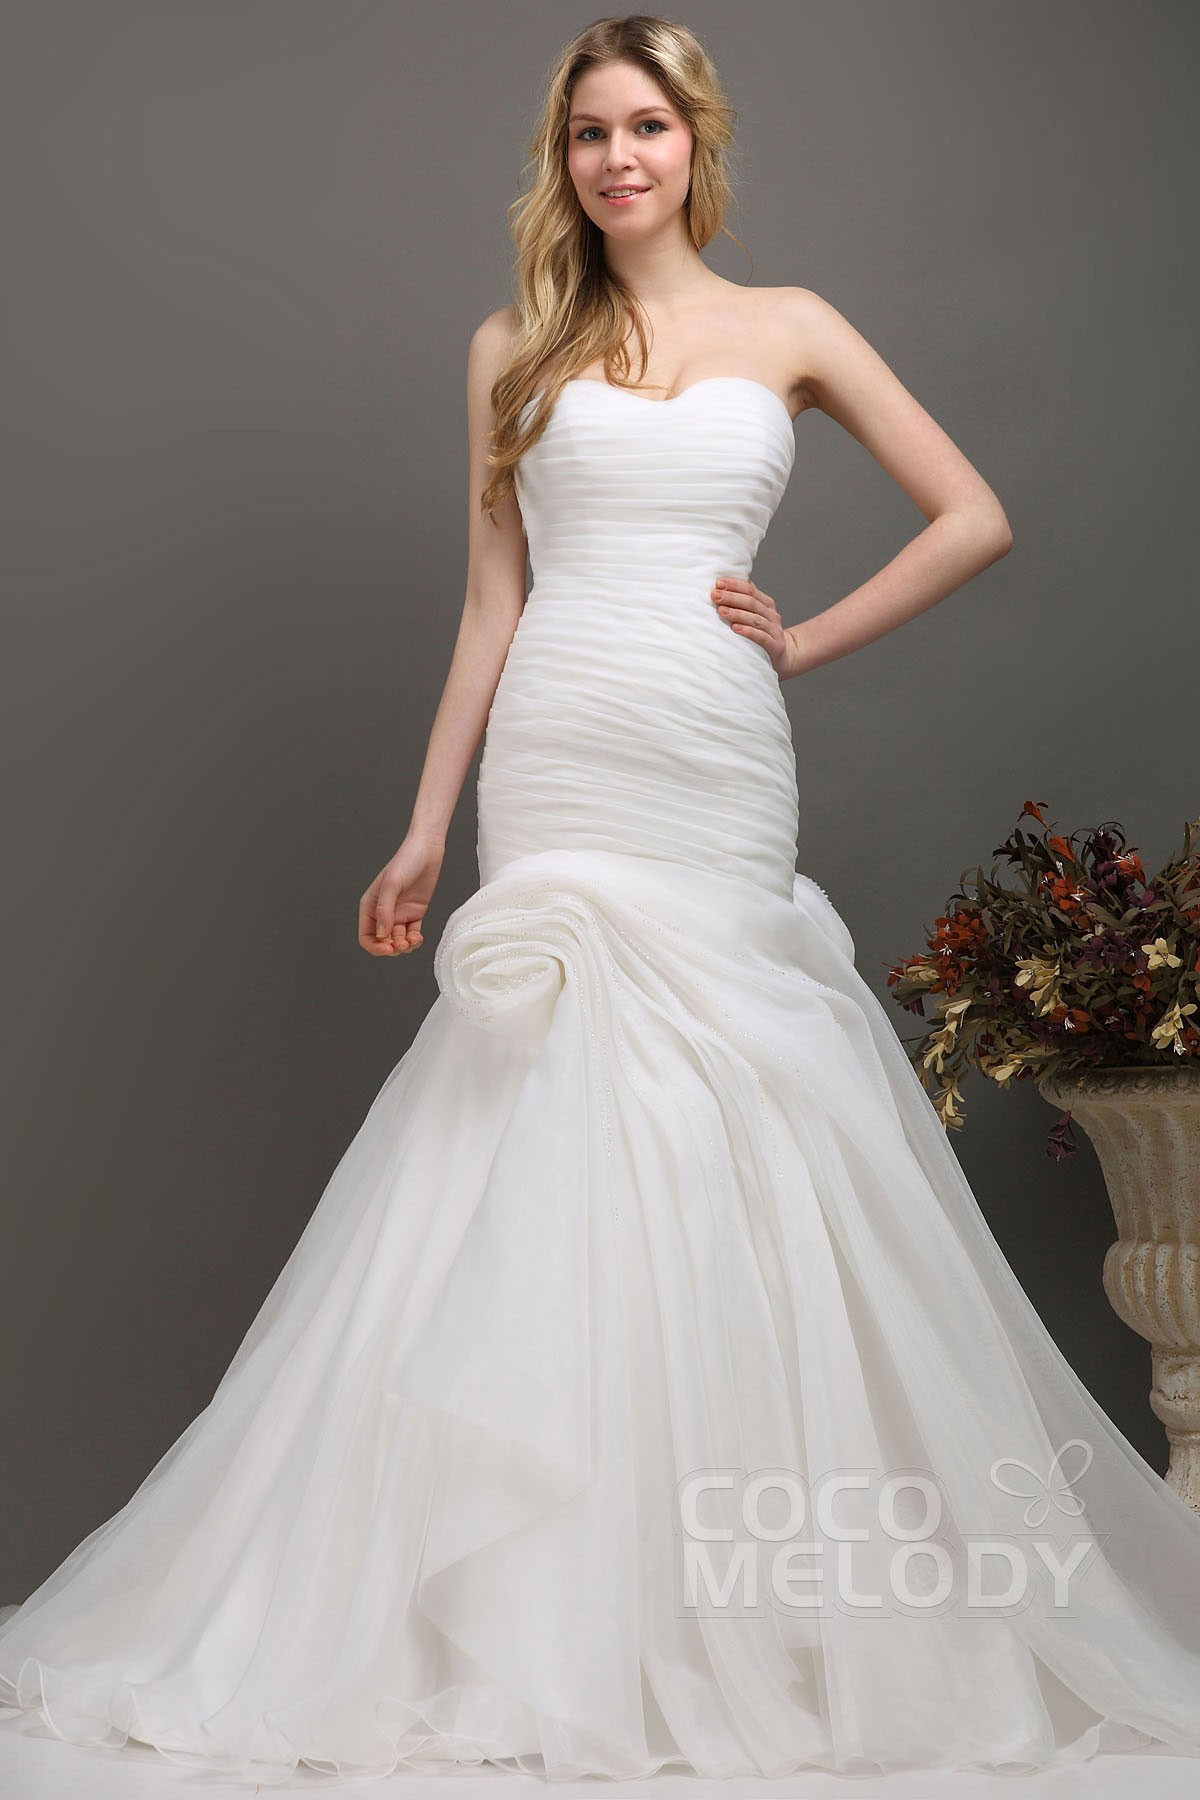 Trumpet-Mermaid Train Organza Wedding Dress CWLT130E0 | Cocomelody